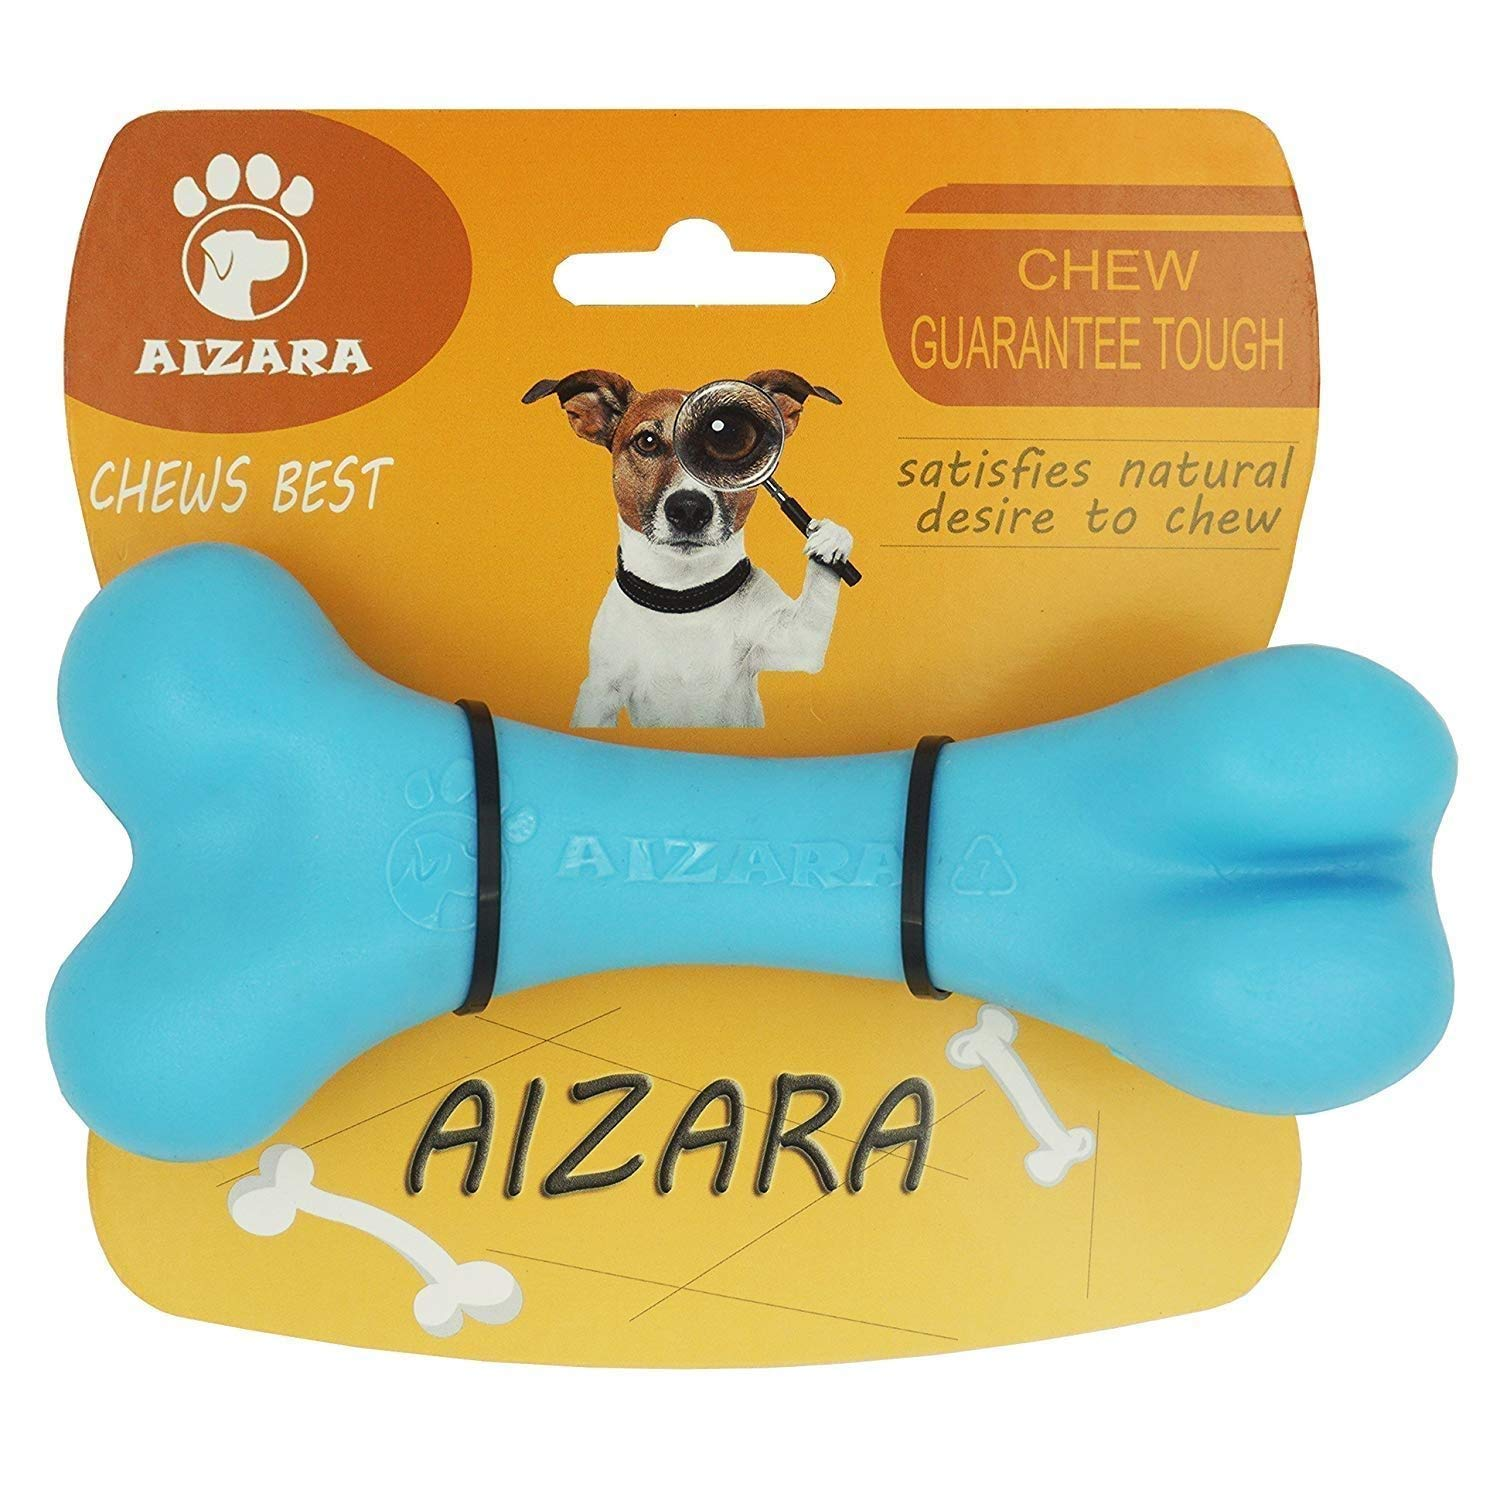 Aizara Dog Chew Toys for Aggressive Chewers, Tough Indestructible Dog Toys for Large Dogs, Durable Nylon Puppy Bone Toys for Training Keeping Pets Fit